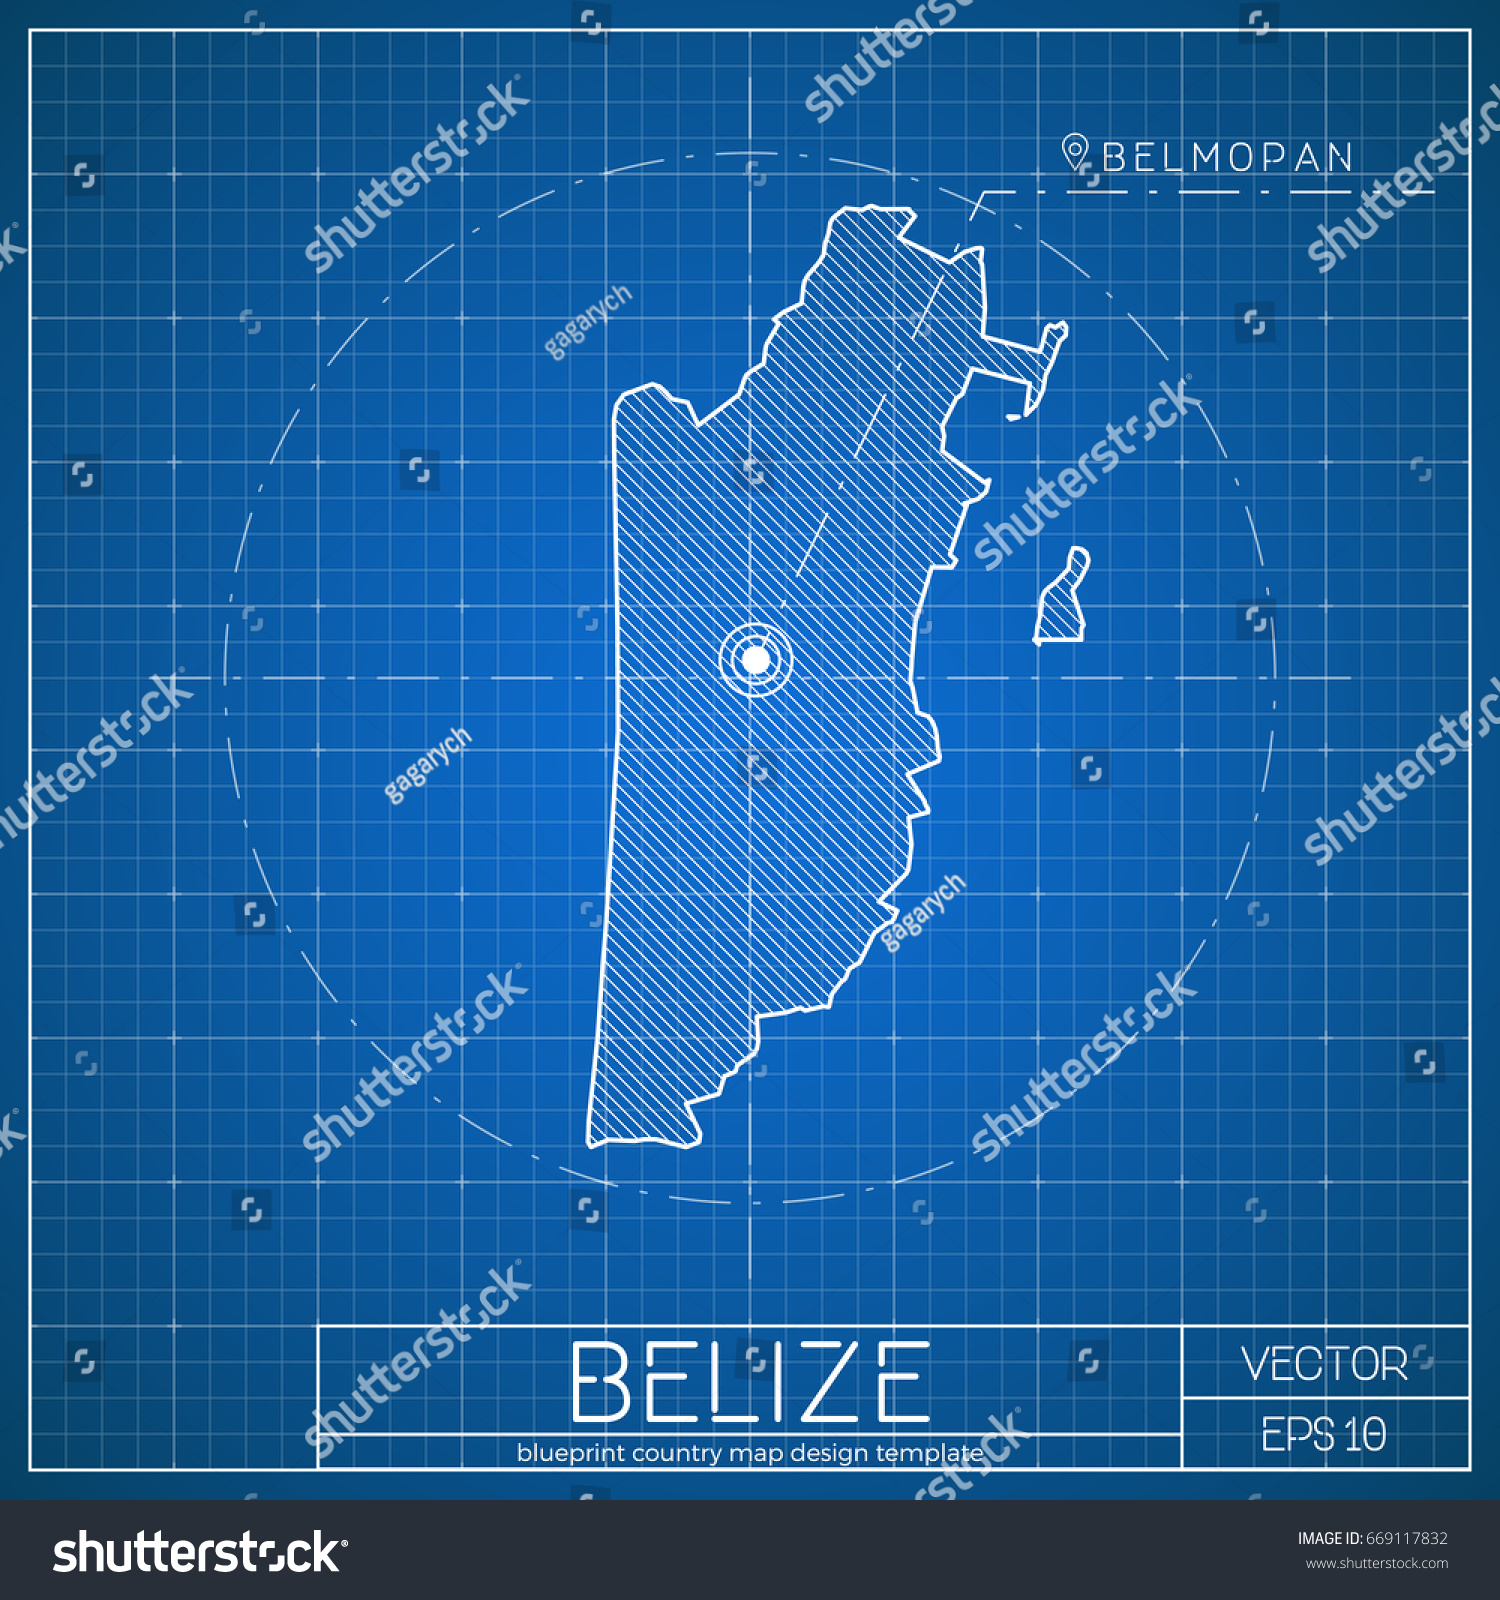 Belize blueprint map template capital city stock vector 669117832 belize blueprint map template with capital city vector illustration malvernweather Image collections